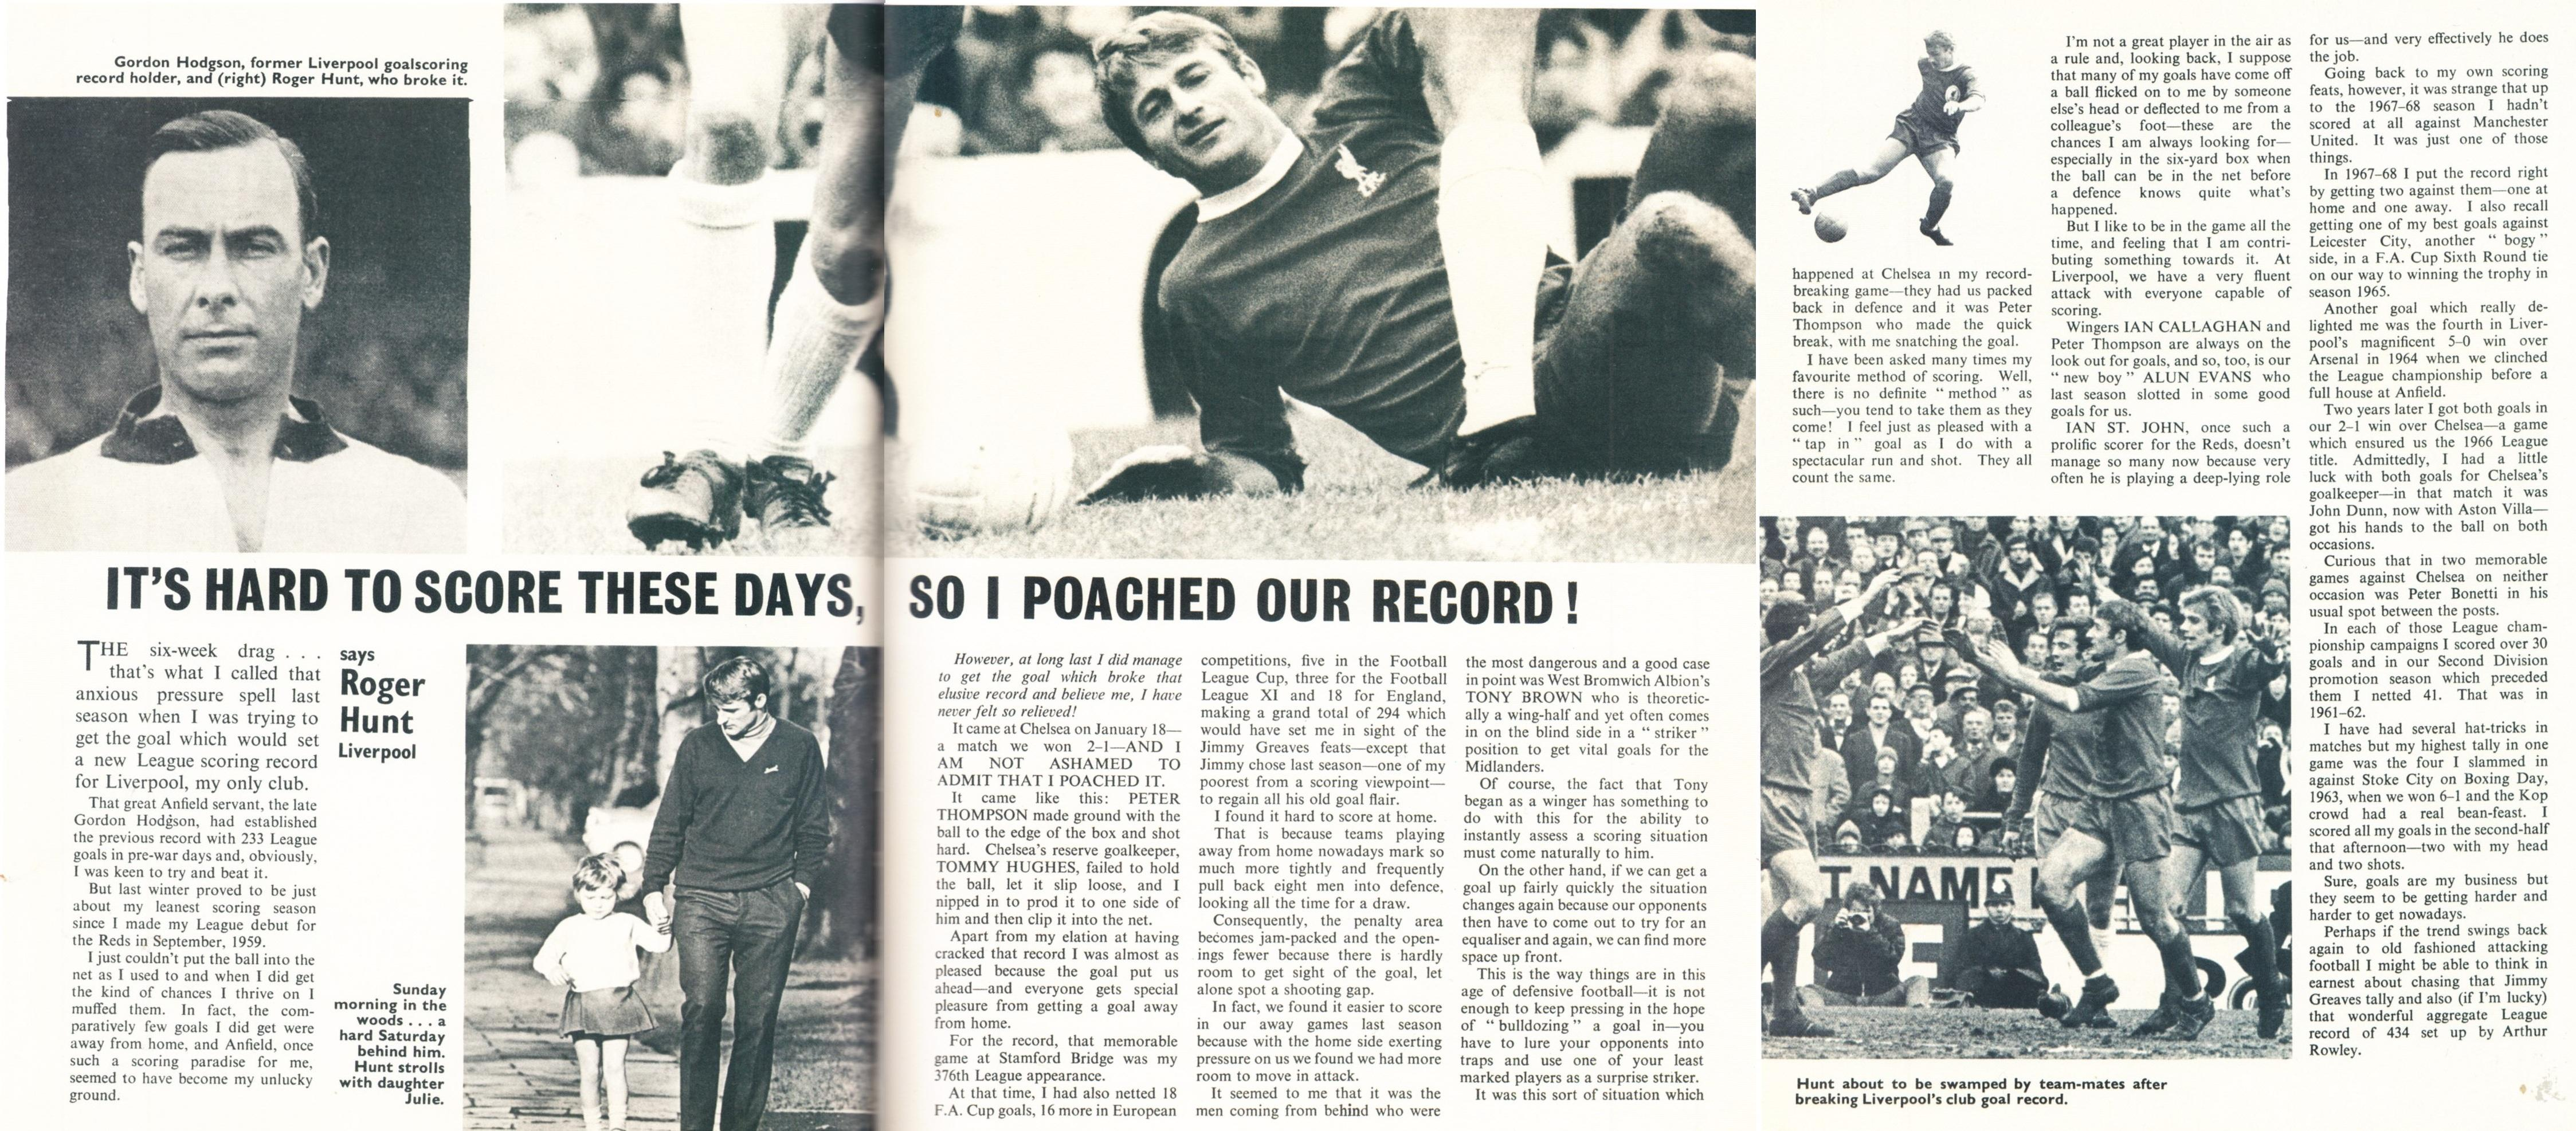 I poached our record! says Roger Hunt - Football Monthly January 1969